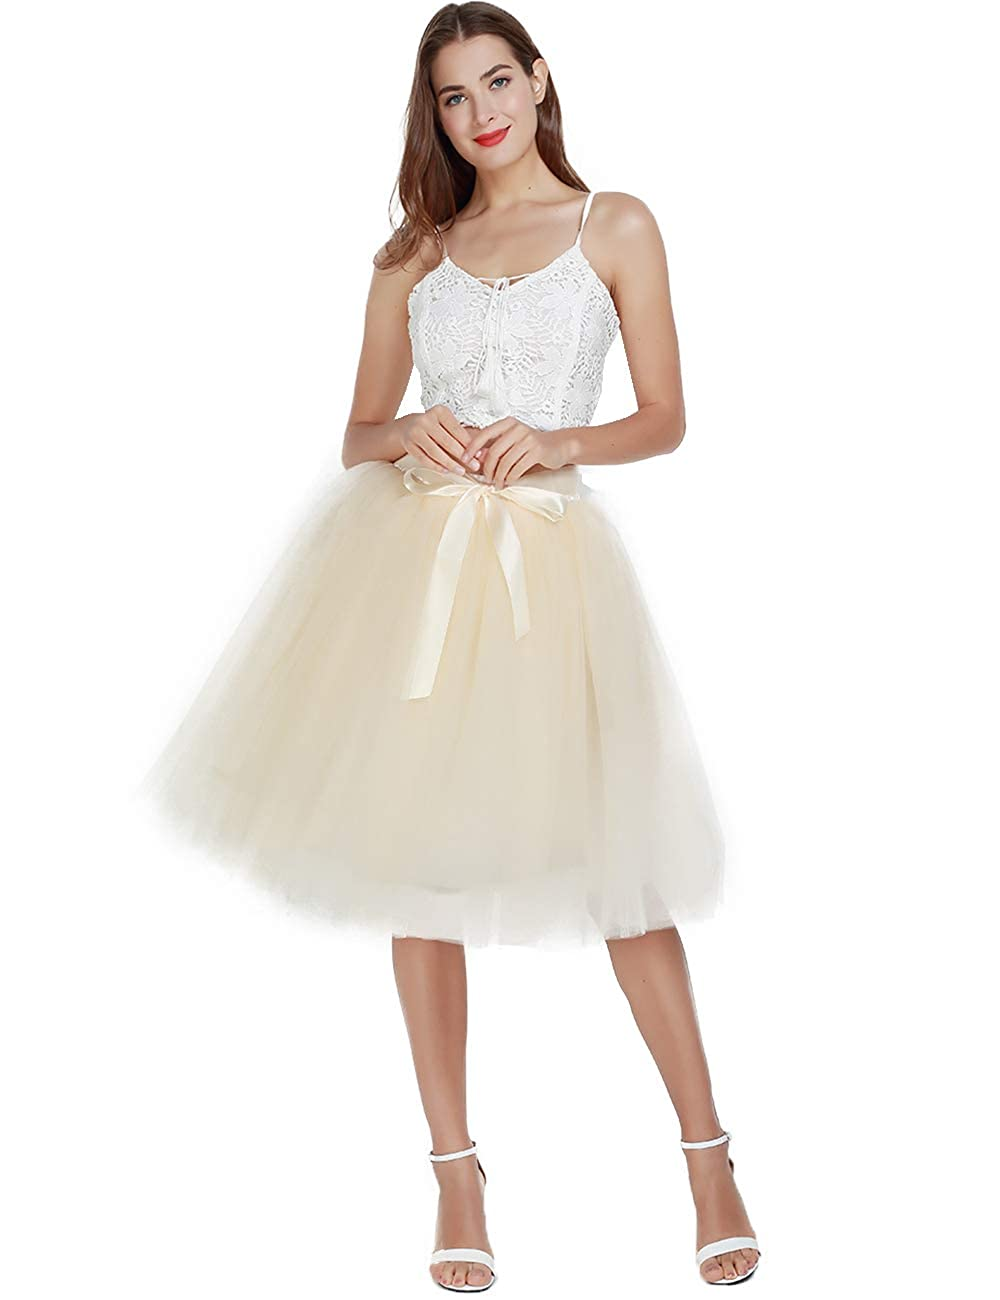 4deb812af8afa Women's High Waist Pleated Princess A Line Midi/Knee Length Tutu Tulle  Skirt for Prom Party